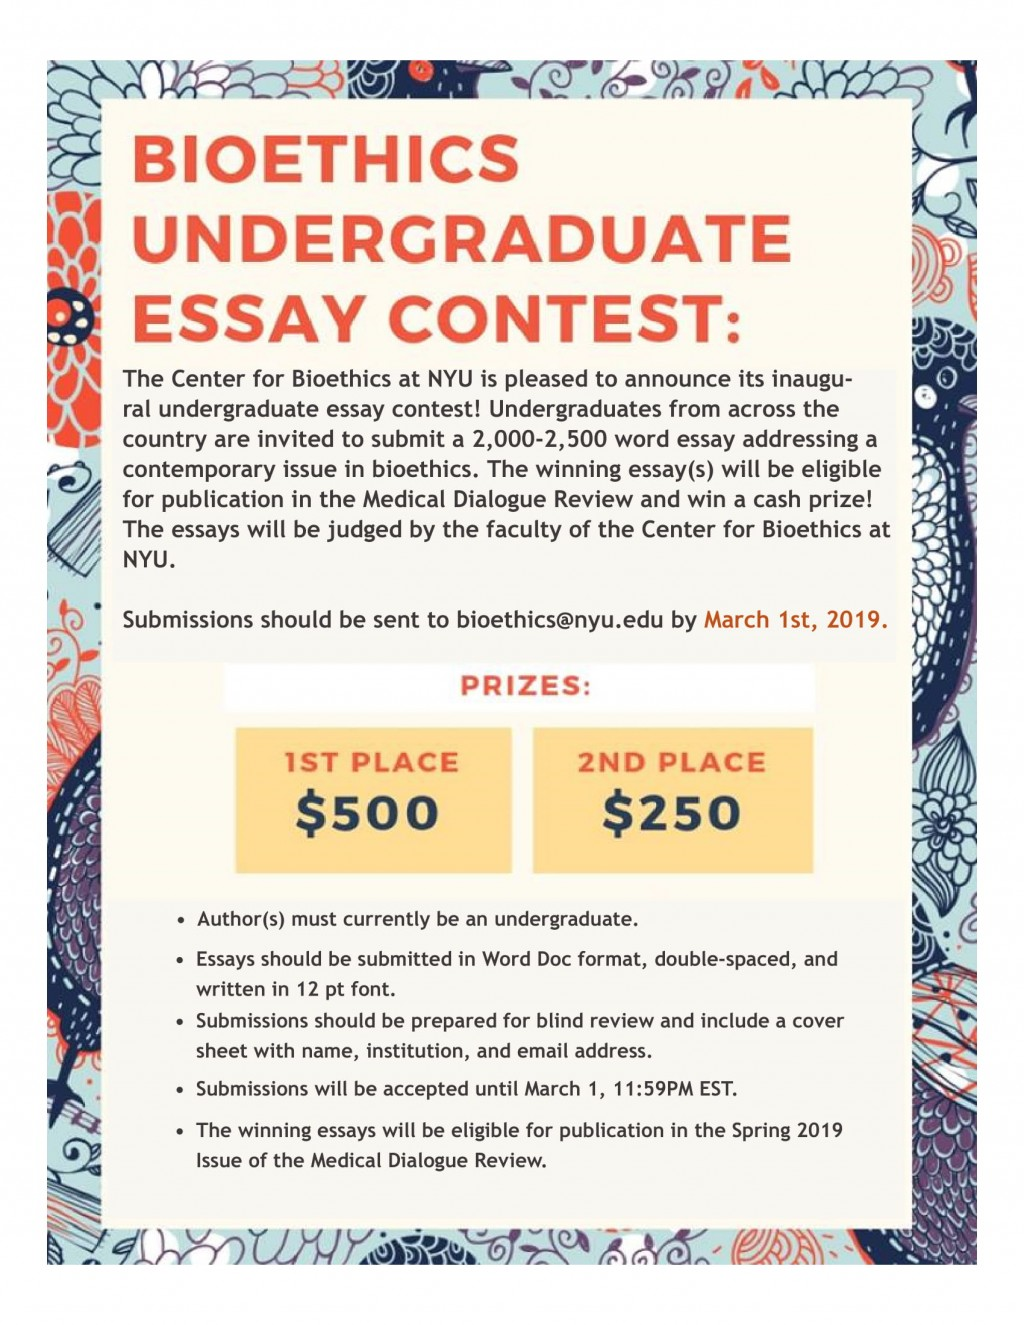 024 Essay Example Submissions Bioethics Contest Flier Impressive Buzzfeed Personal Press New York Times Large